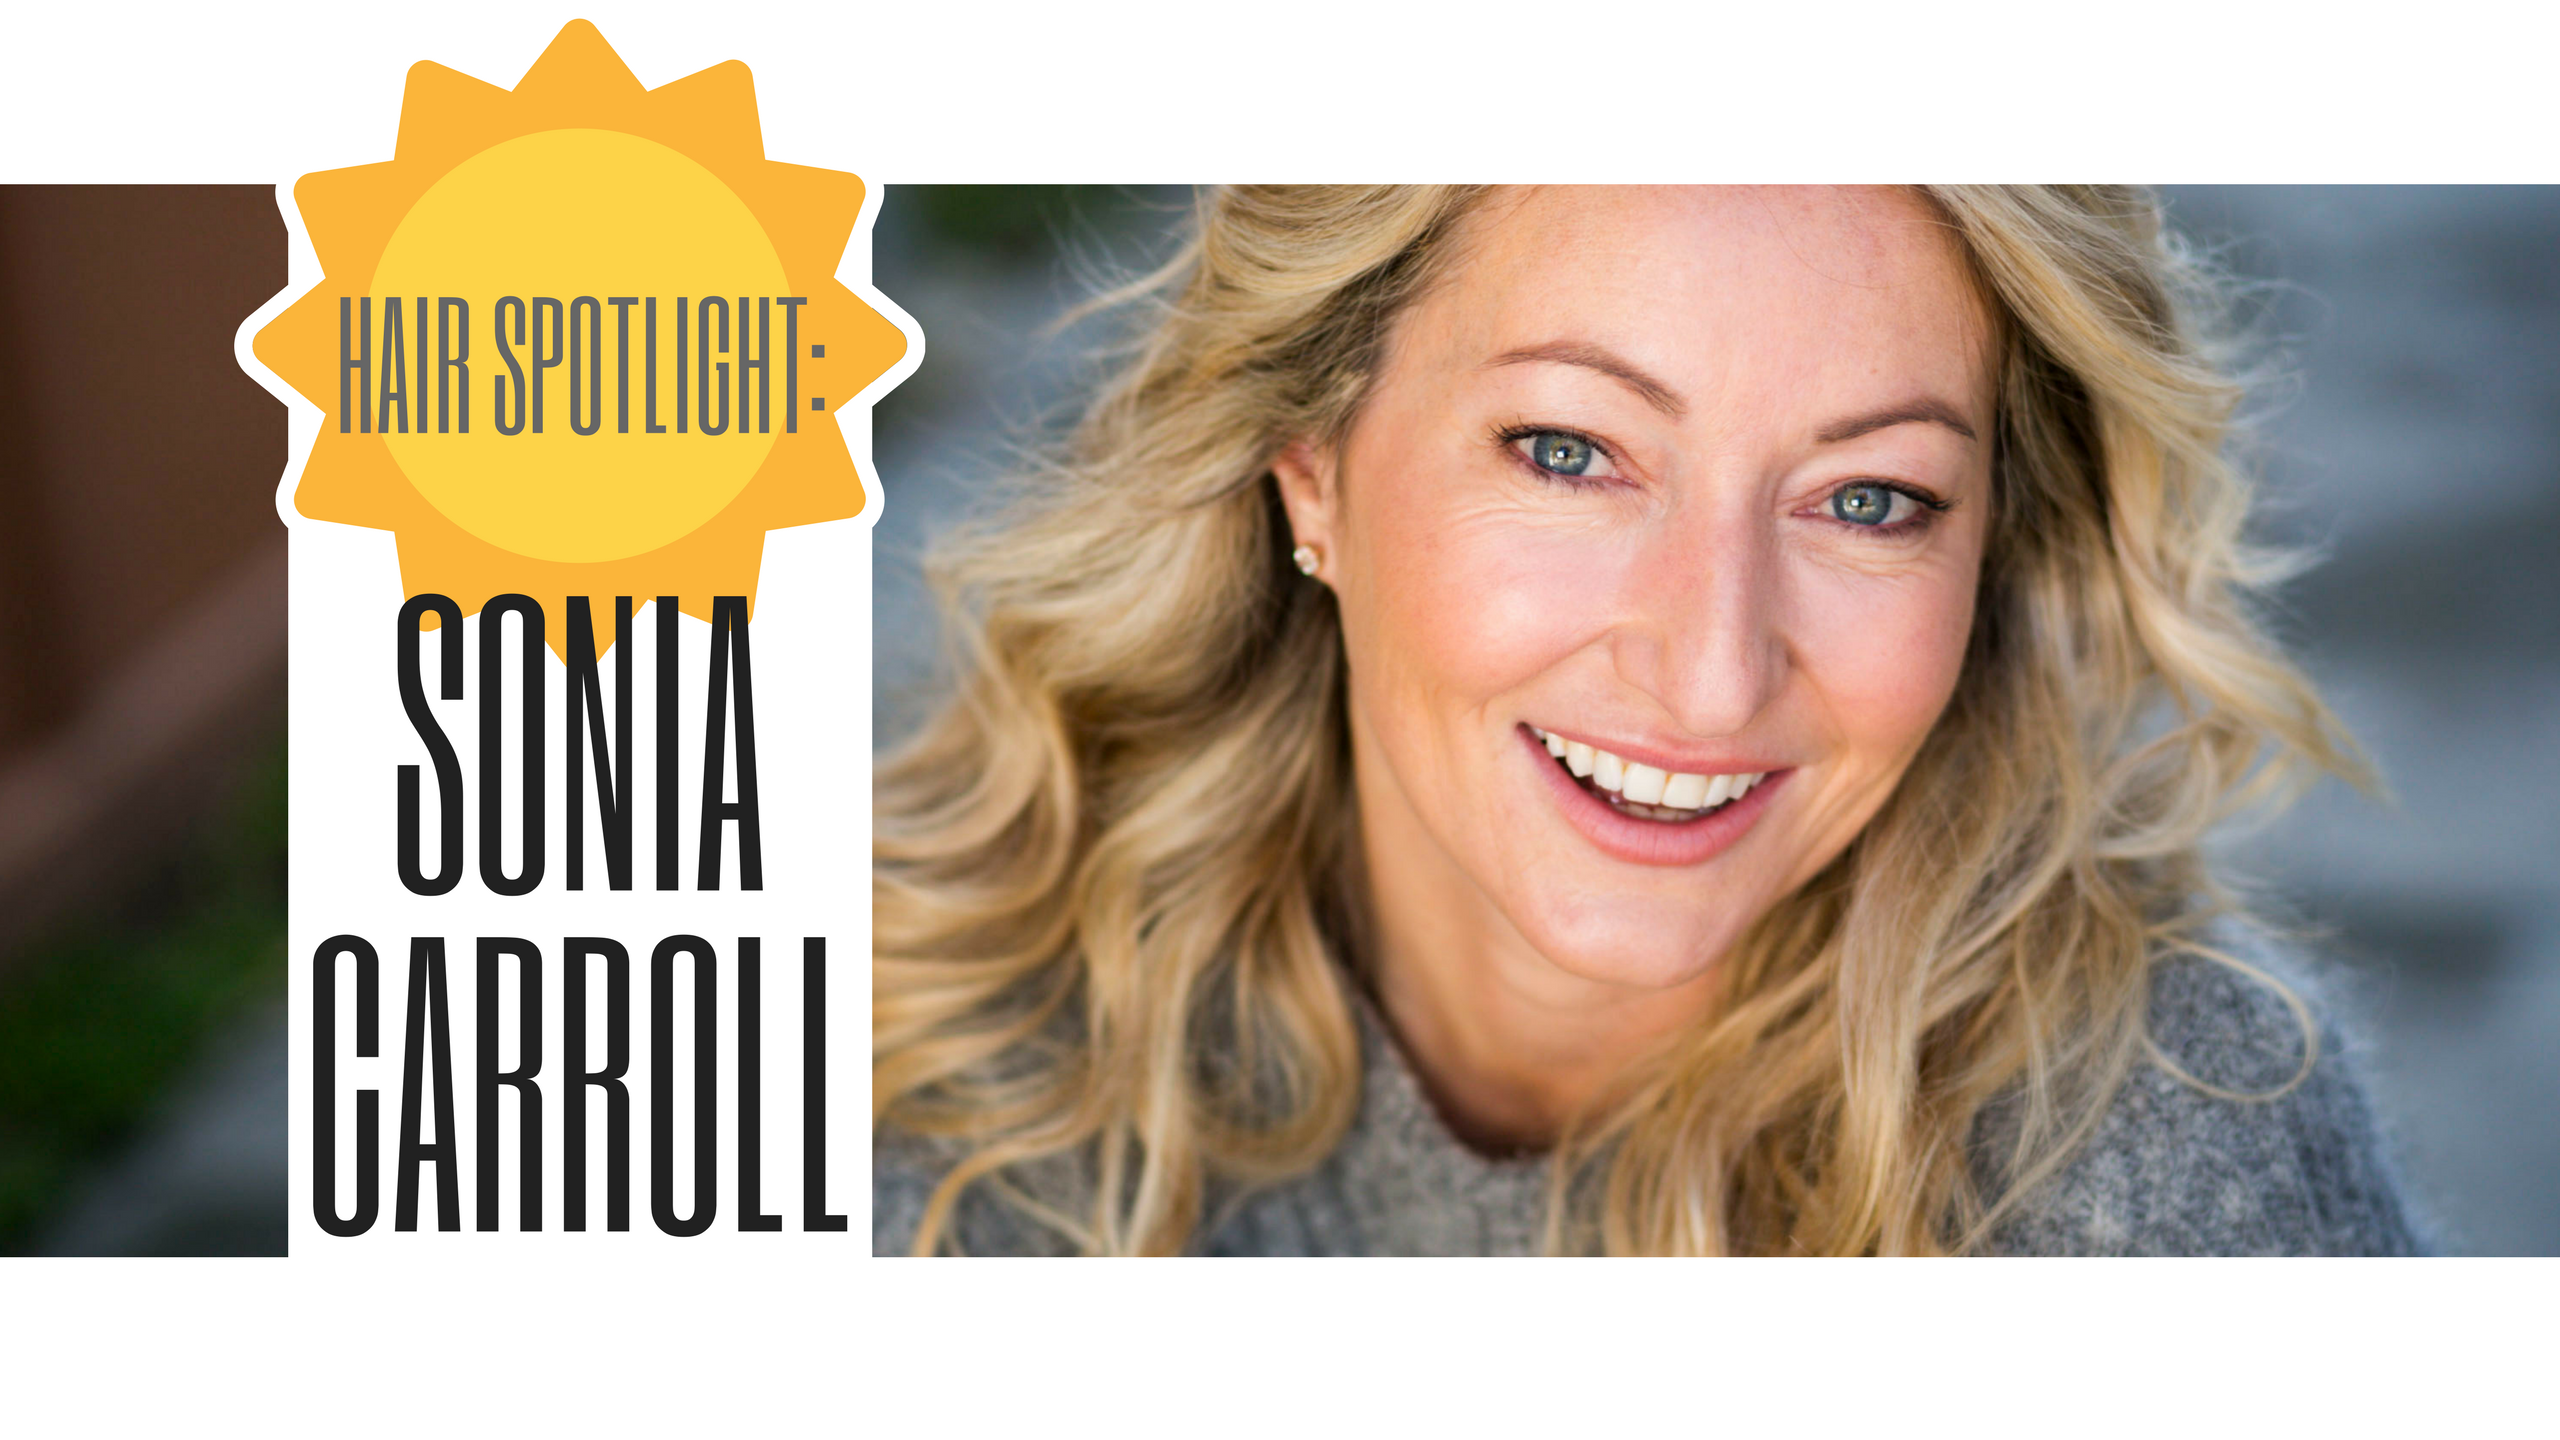 Hair Spotlight Sonia Carroll